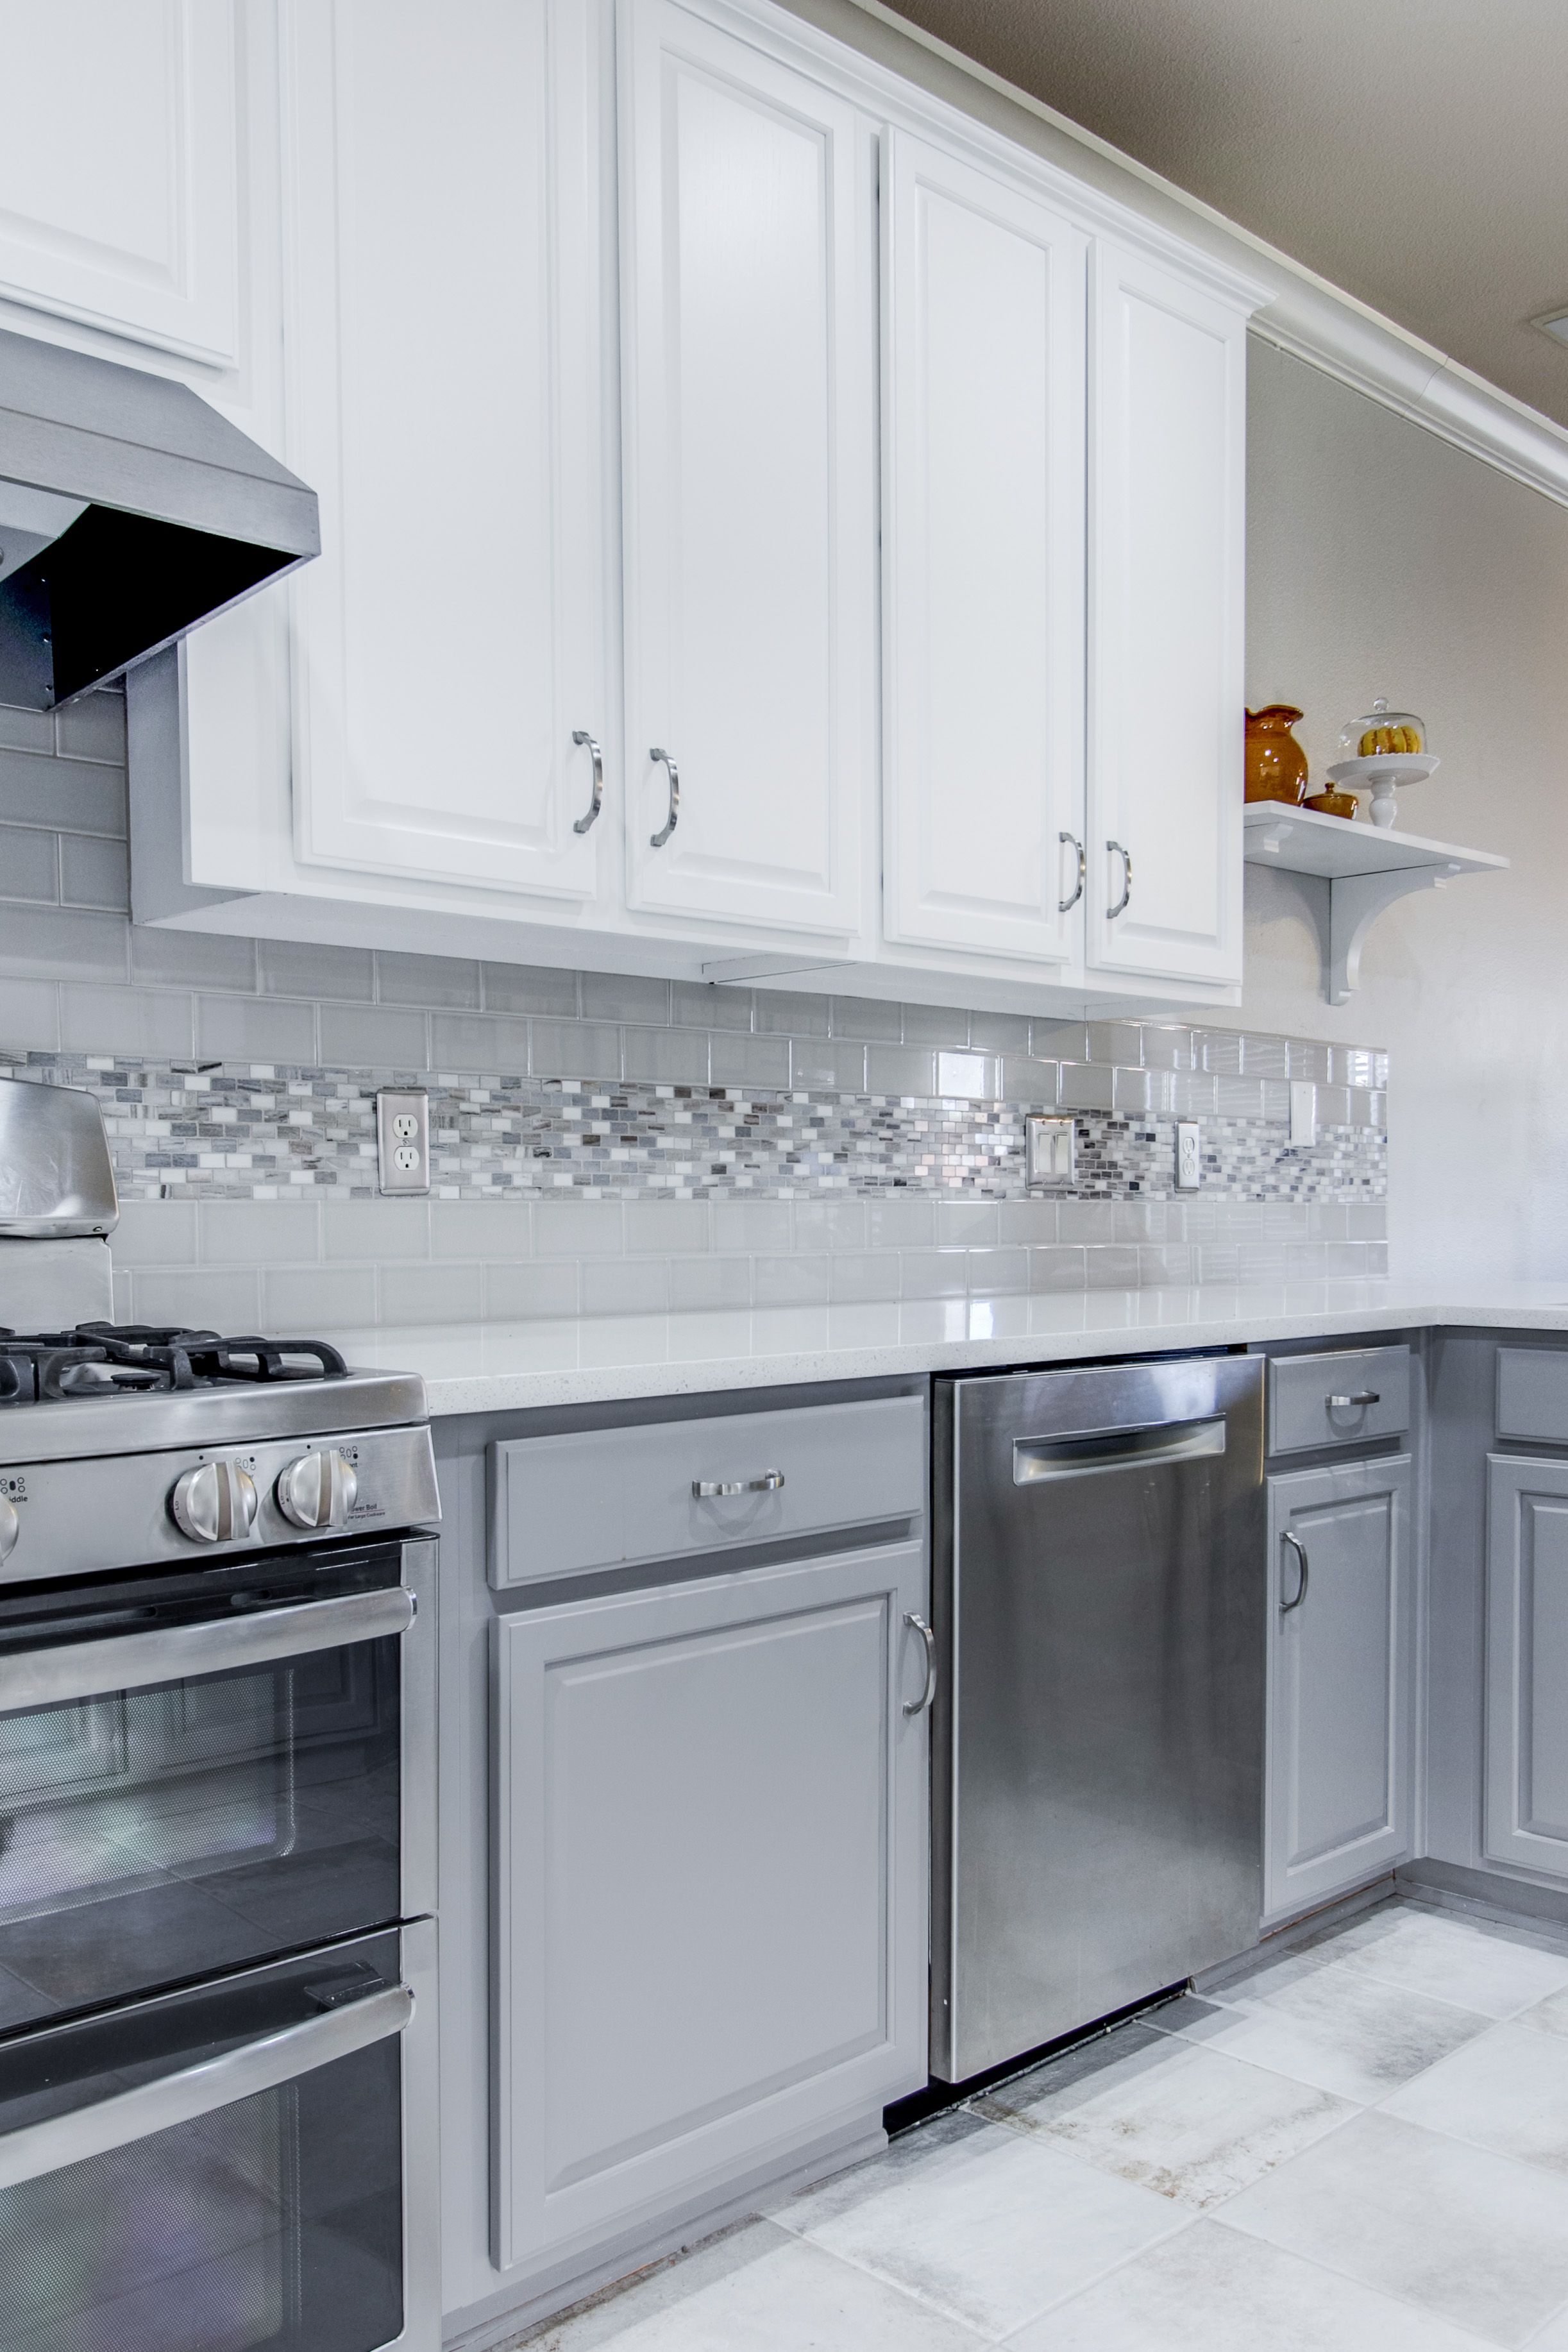 We brought this kitchen up to date by painting the